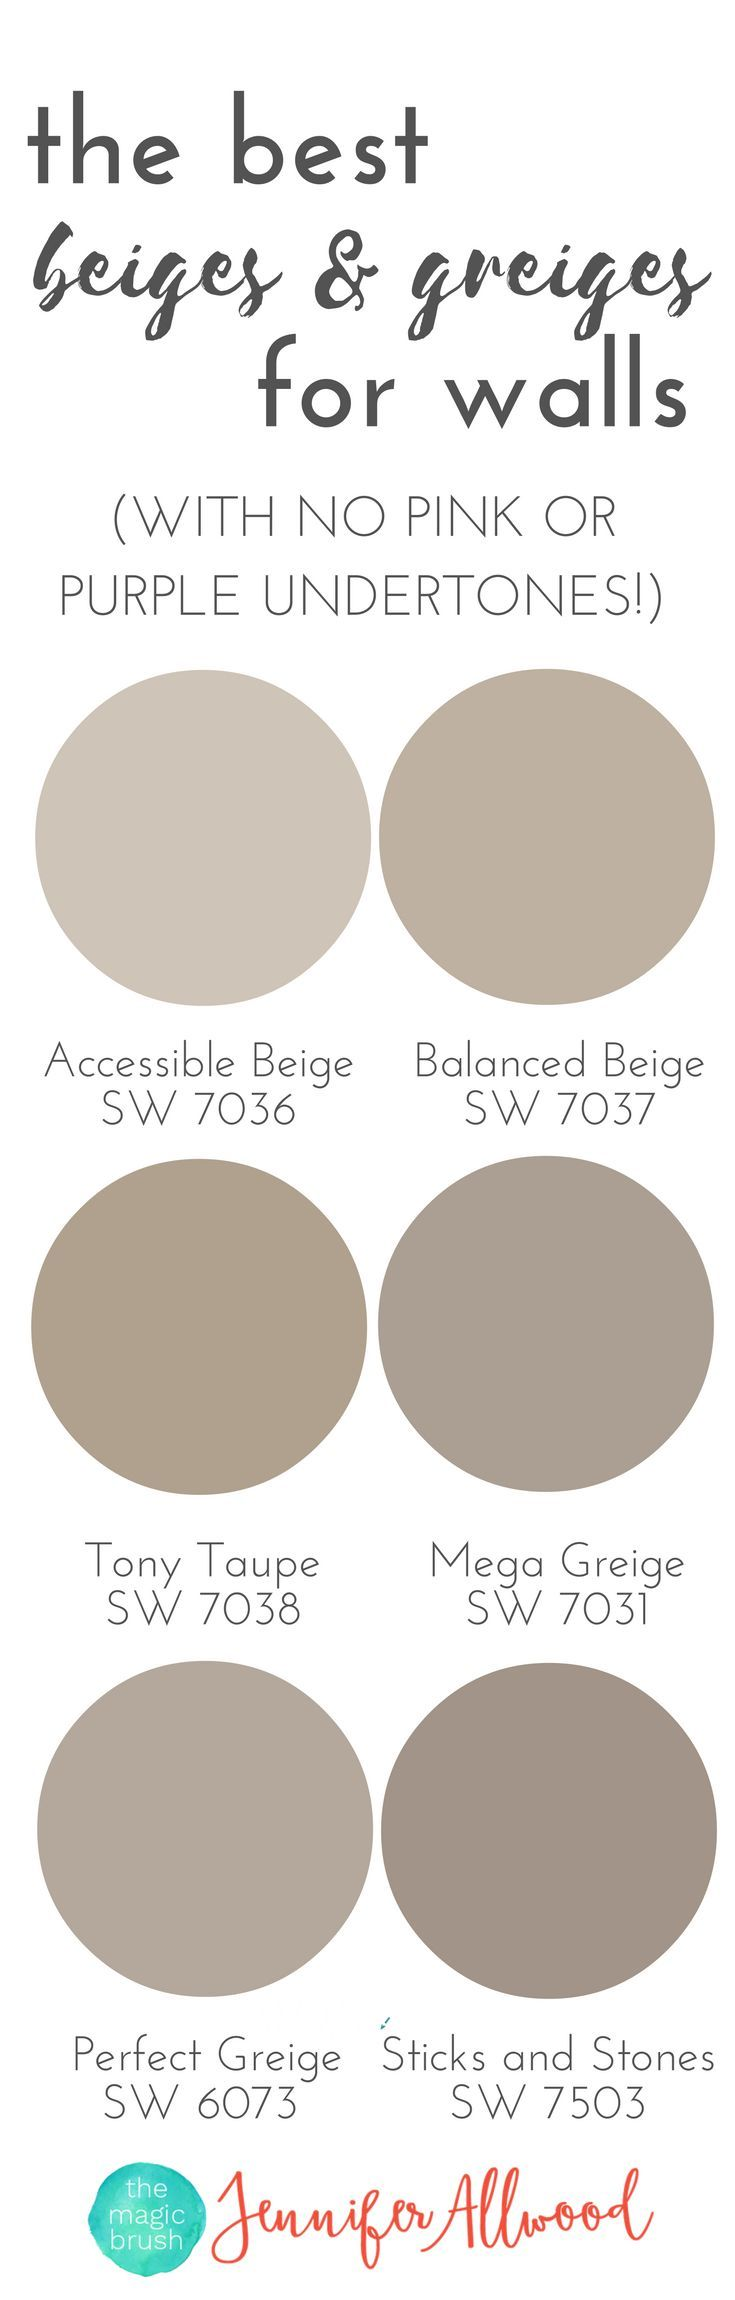 the best Beige and Greige Wall Paints for walls | Magic Brush ...